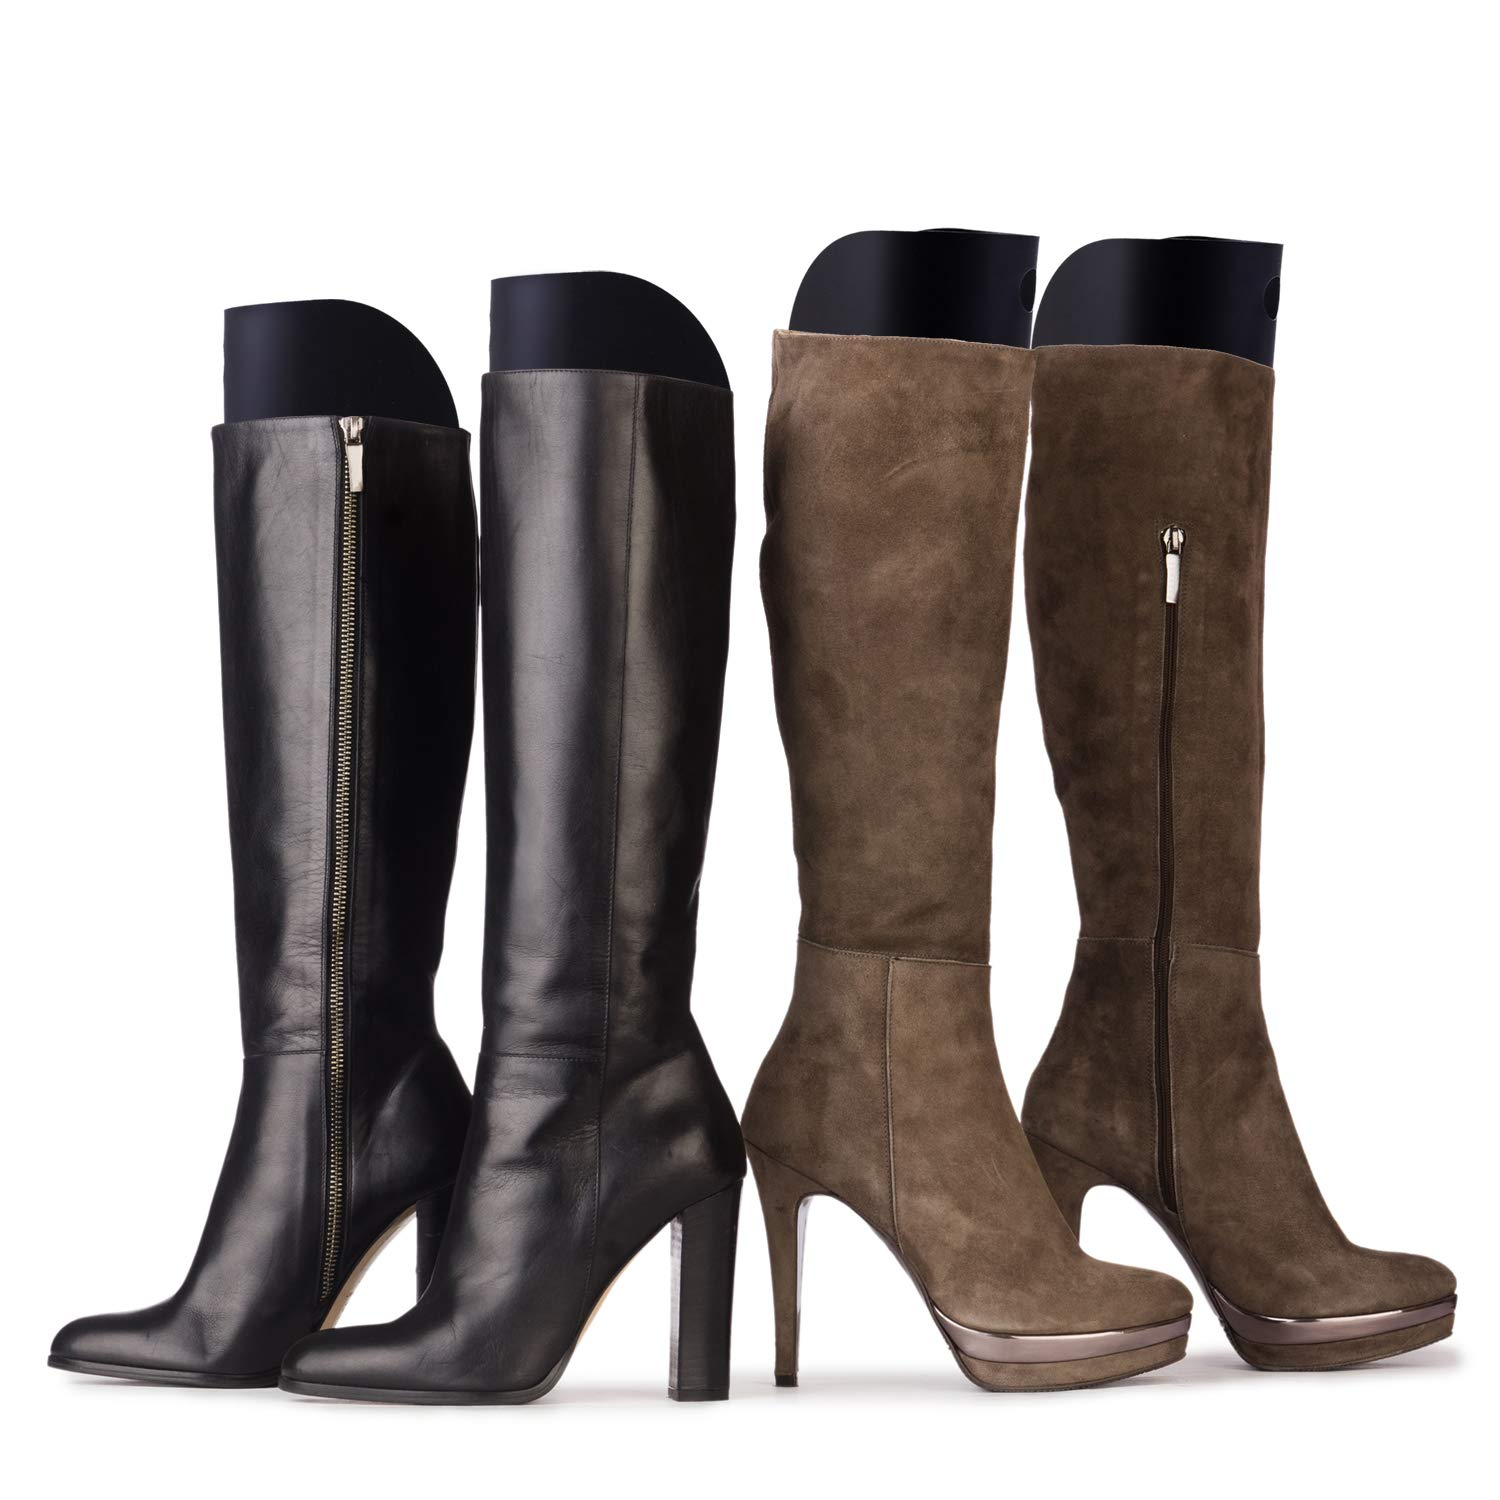 BOOT FILLERS